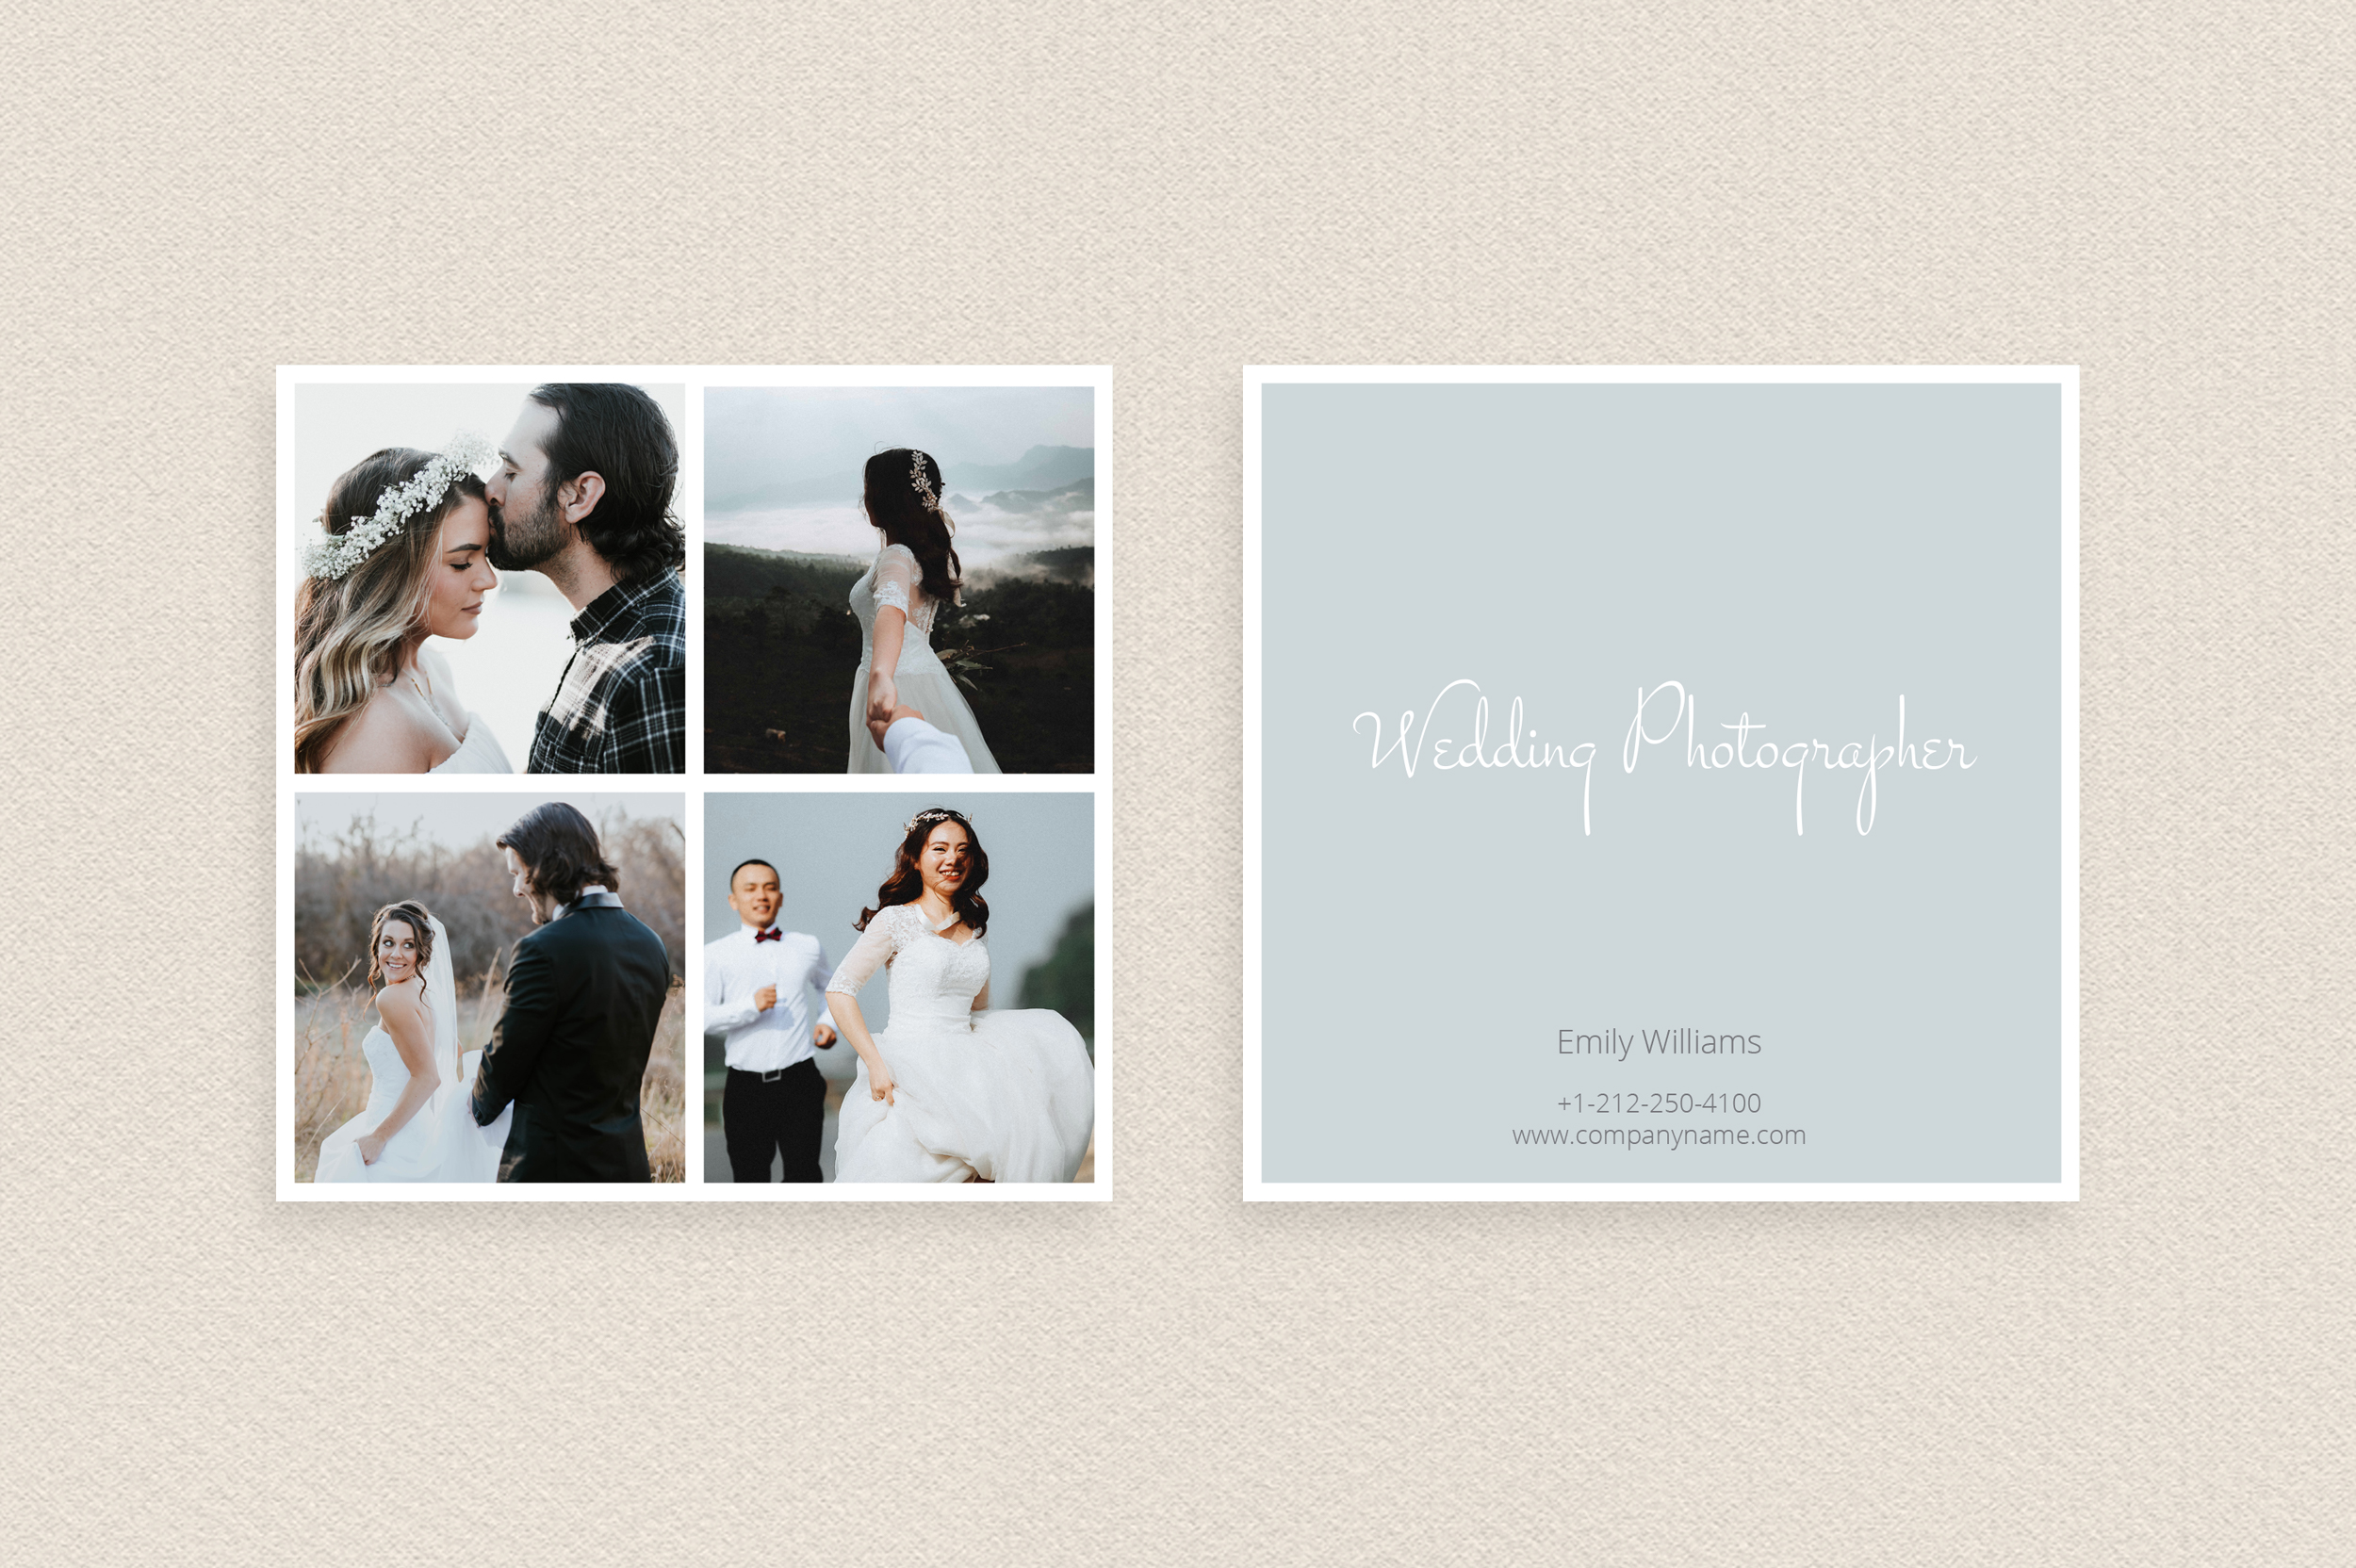 Square Polaroid Wedding Photographer Business Card example image 2